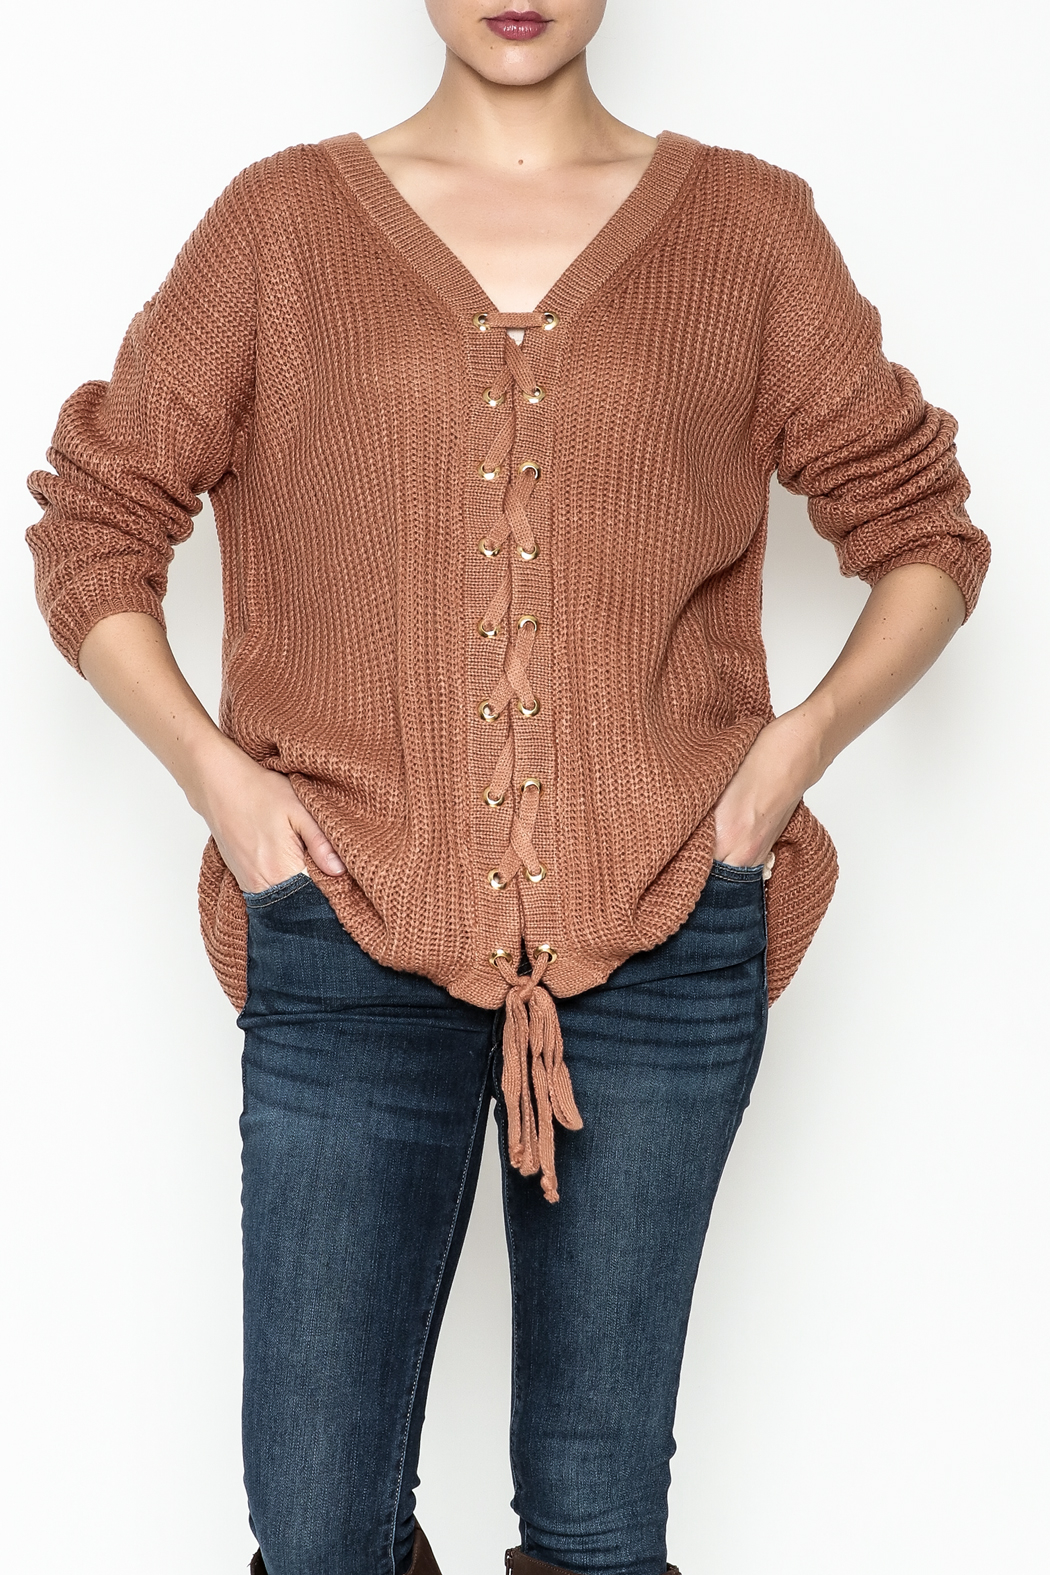 Entro Lace Me Up Sweater - Main Image